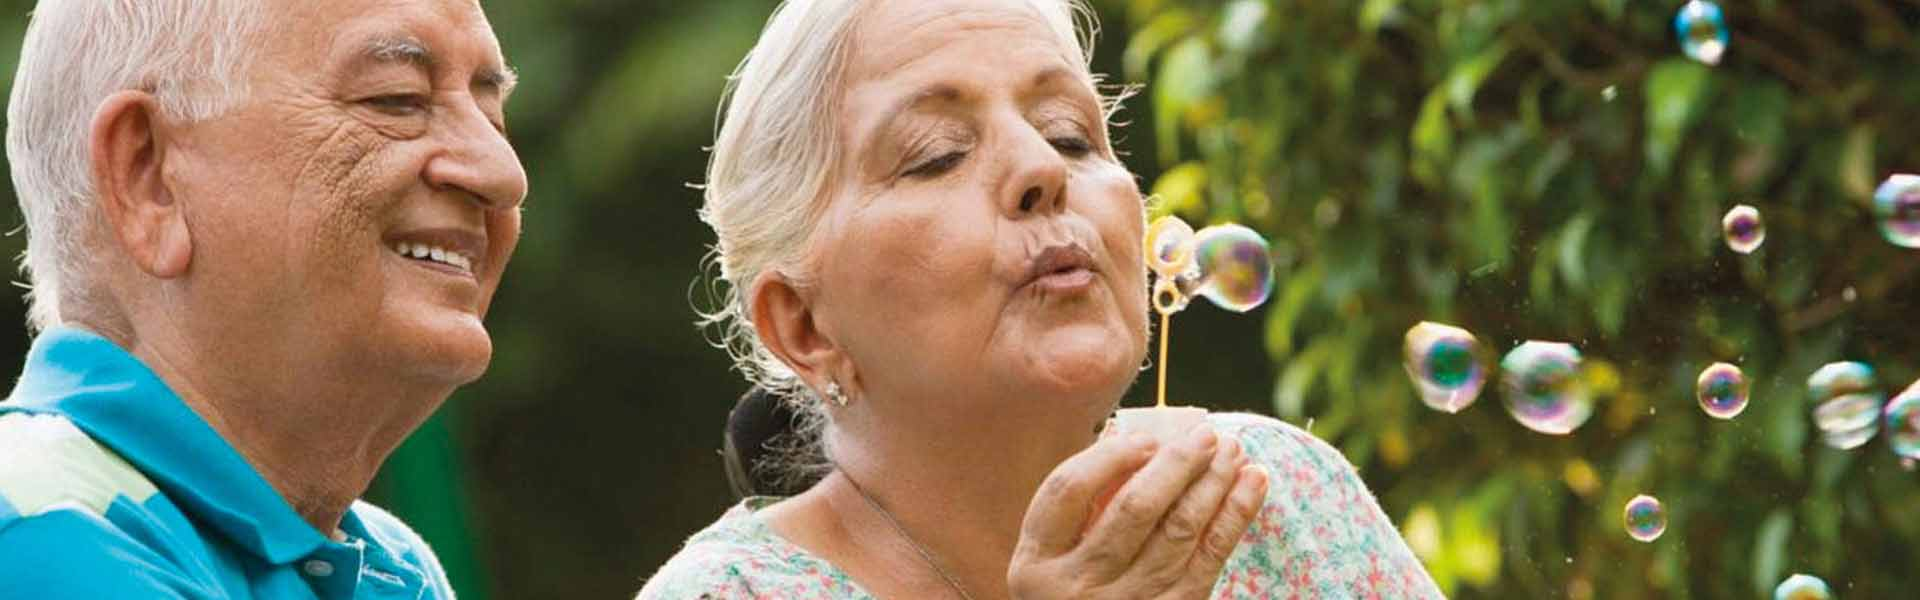 Home Attendant for Elderly, At Home Senior Care, Best Home Care Services in Delhi